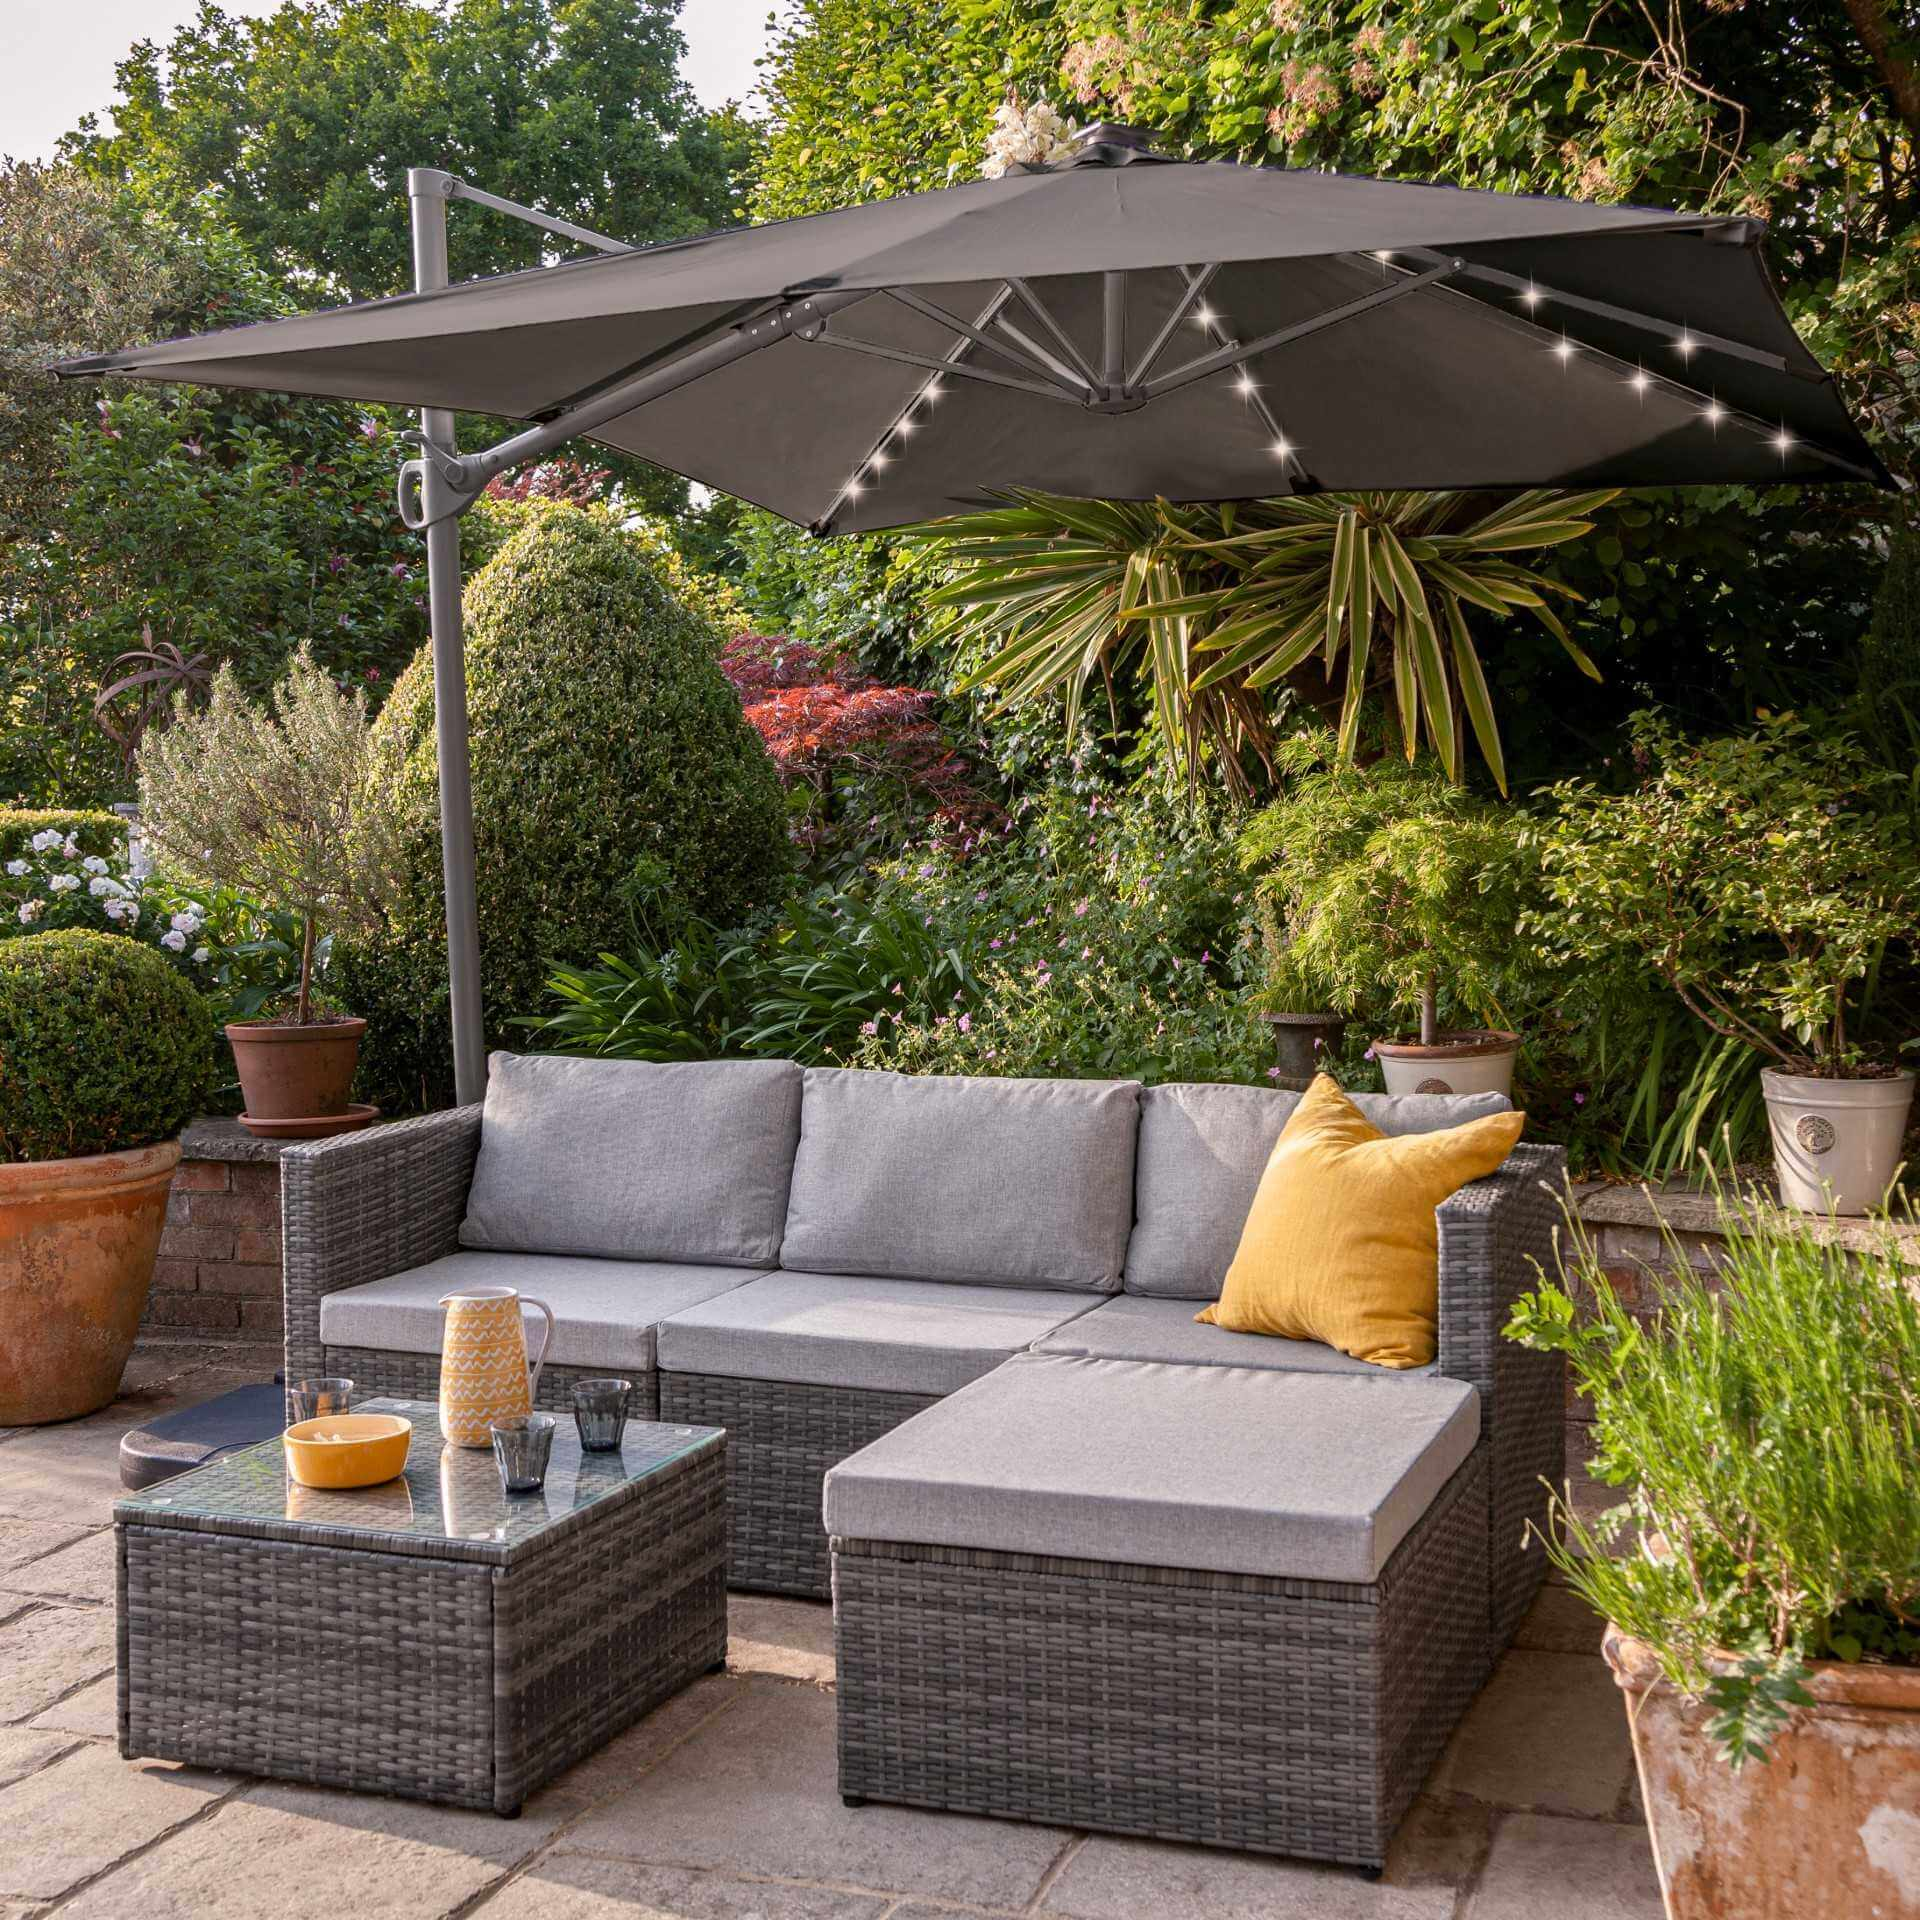 4 Seater Rattan Corner Sofa Set with LED Cantilever Parasol and Base - Grey Weave